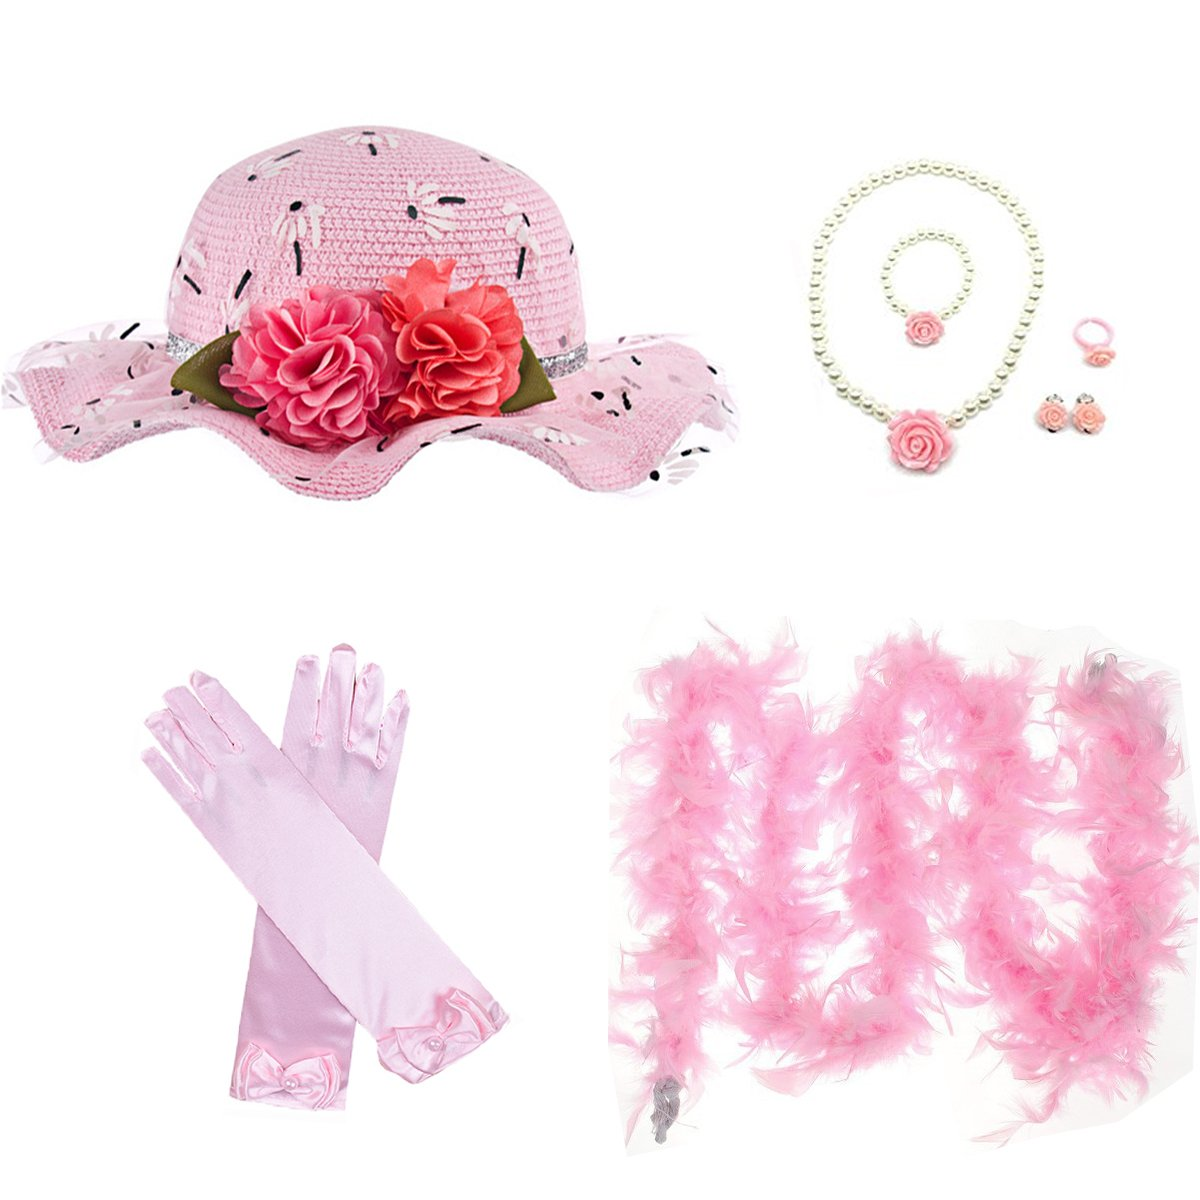 GILAND Girls Tea Party Set Dress Up Play Sunhat, Feather Boa, Gloves and Jewelry (Light Pink)